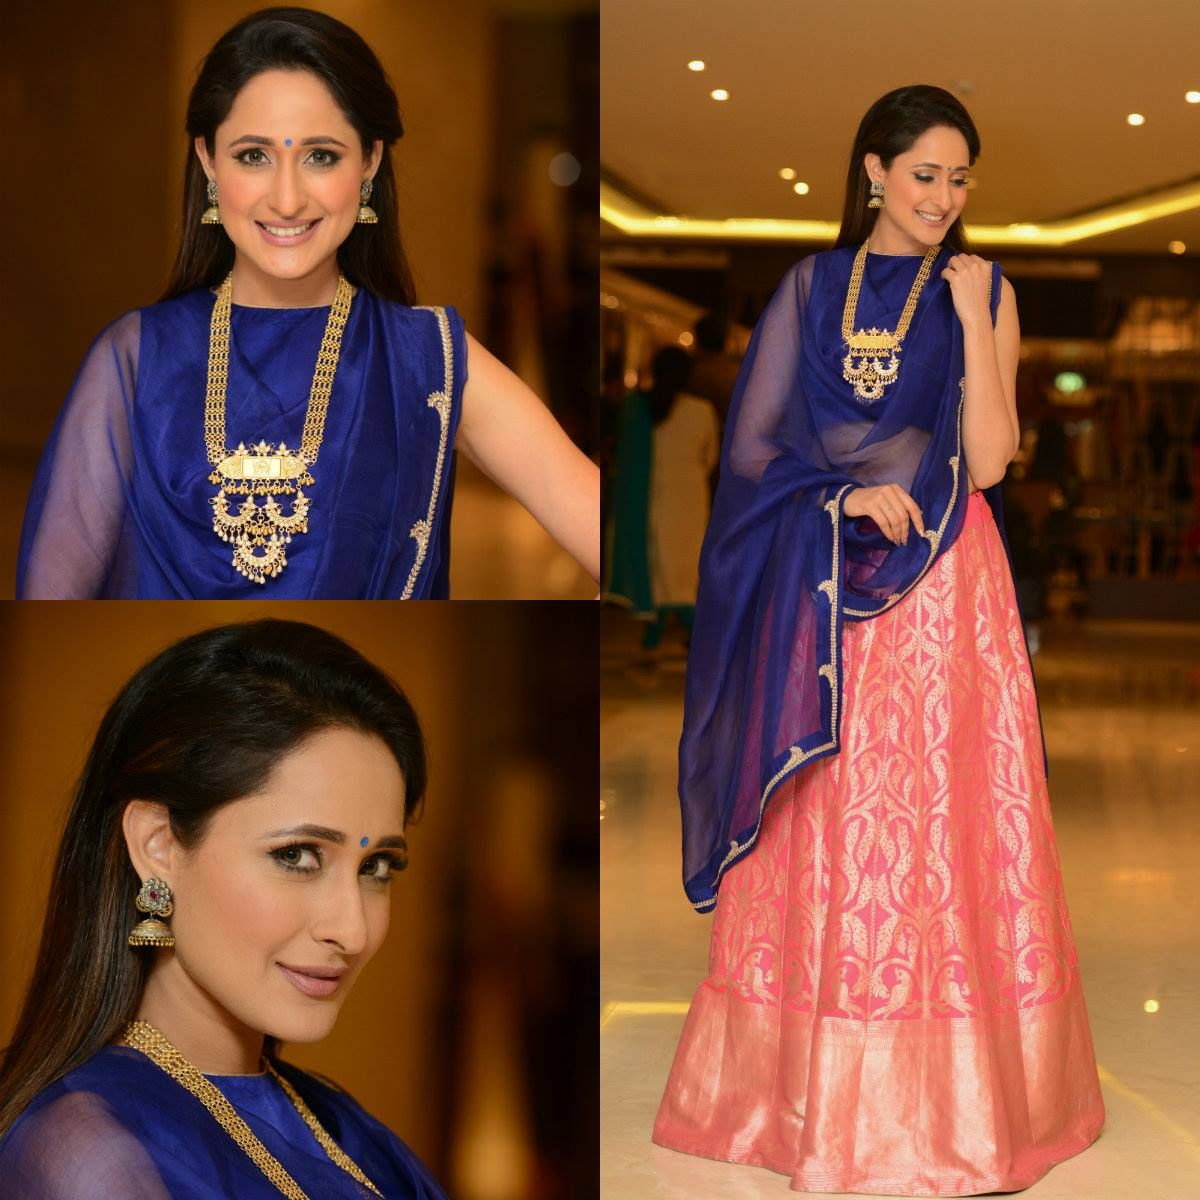 Pragya Jaiswal embracing the South Indian in her in this beautiful lehanga from Raw Mango and elegant temple jewellery by  shringaar the ethnics tory  Silver Centrre Minerali. Styled by  Anisha Gandhi   Rochelle D sa at